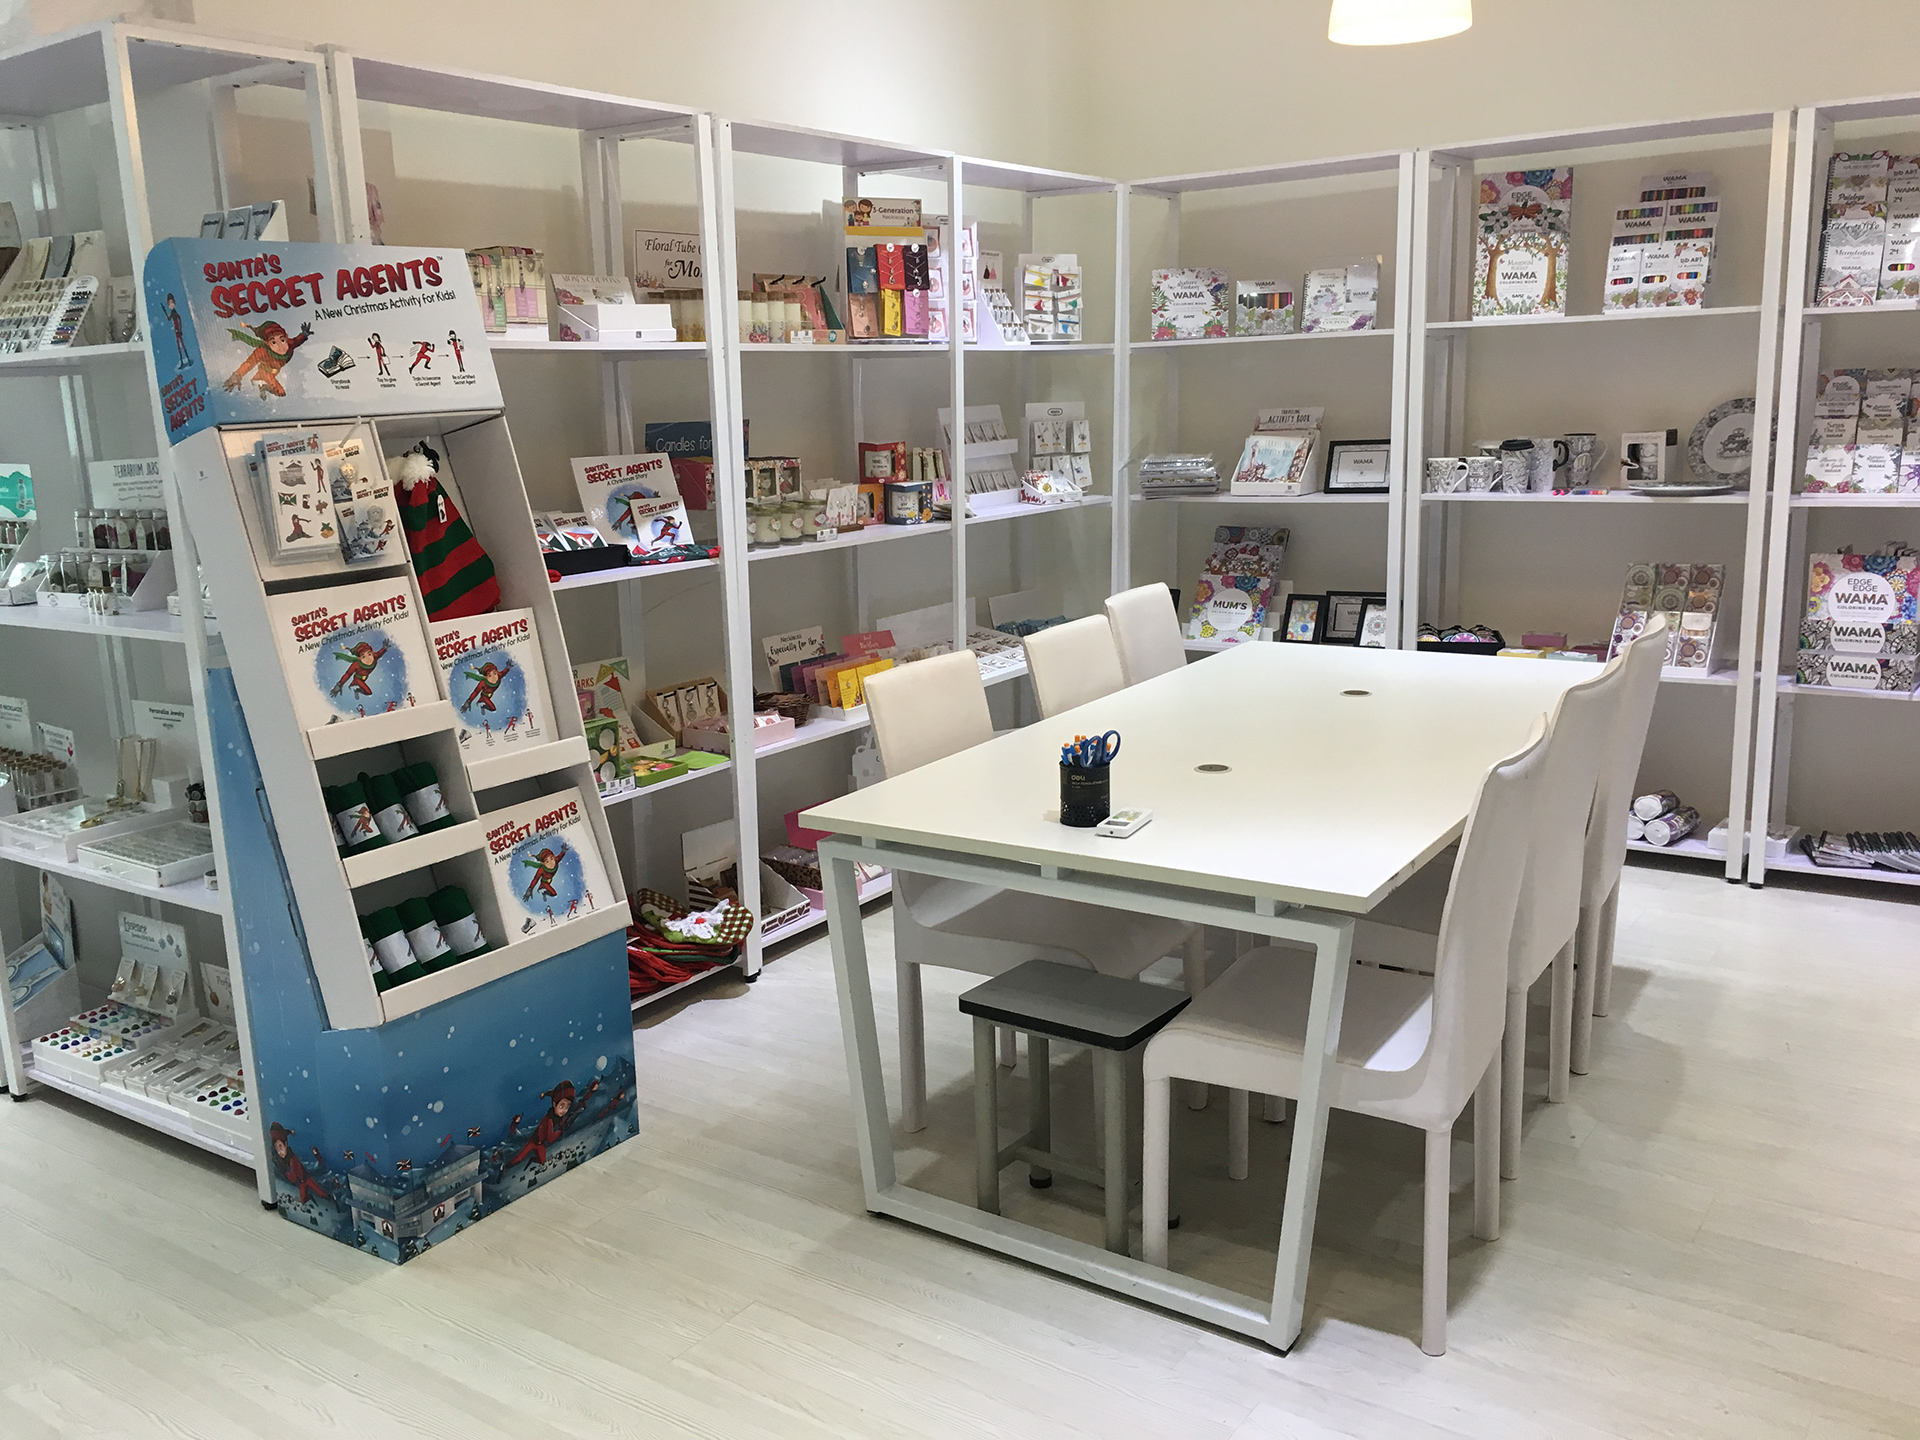 1000 Miles company showroom, featuring WAMA coloring books and Santa's secret agents